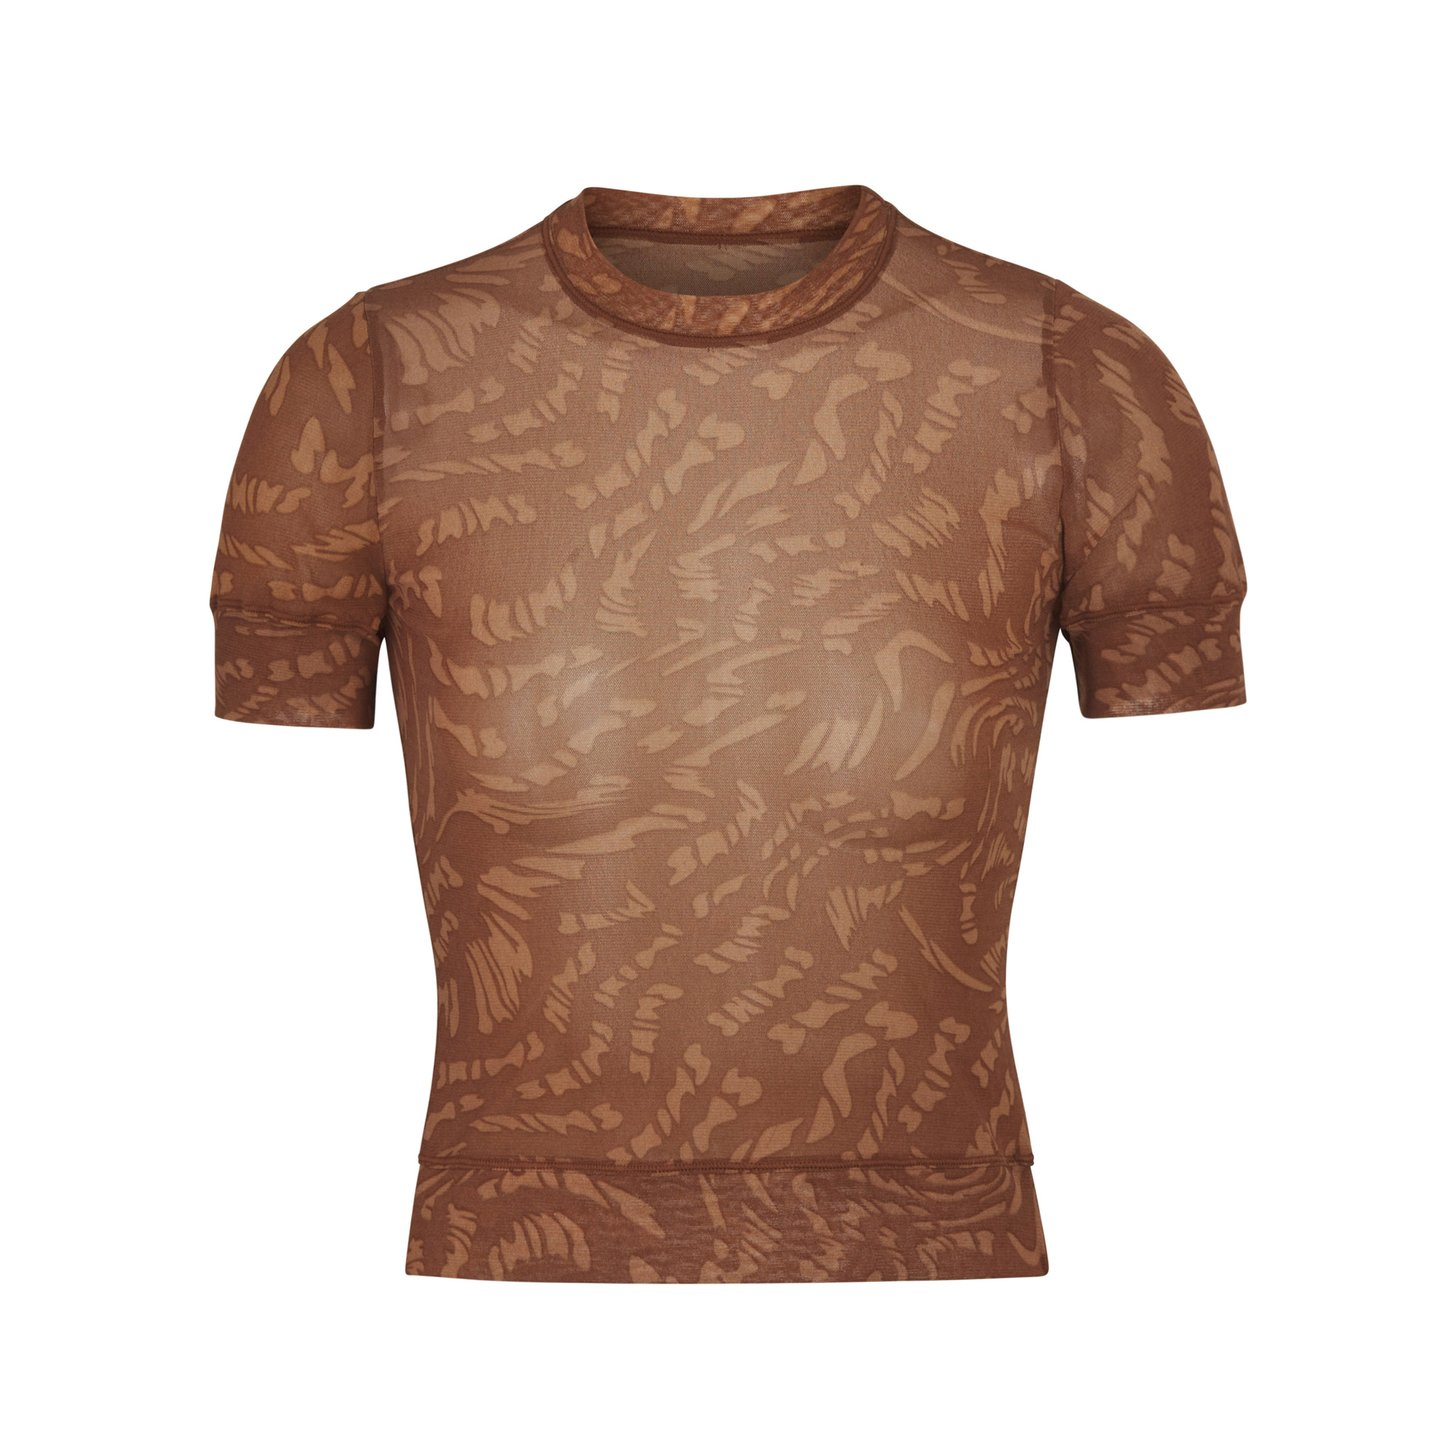 SUMMER MESH T-SHIRT by Skims, available on skims.com for $51 Kim Kardashian Top Exact Product